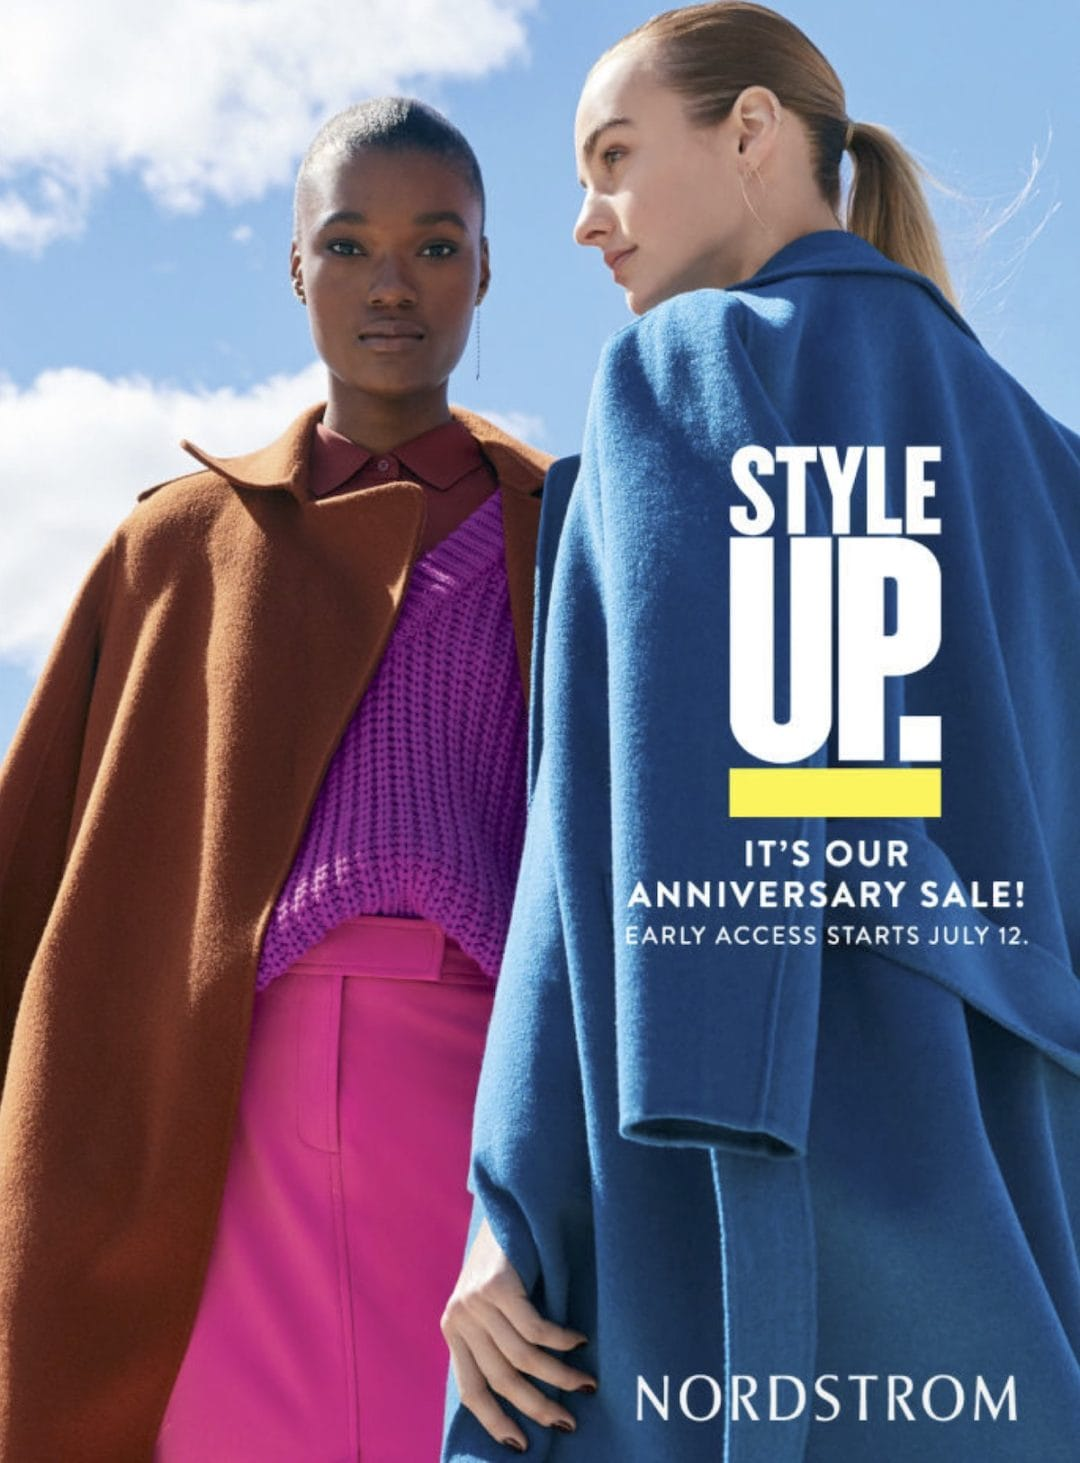 A detailed review of the Nordstrom Anniversary Sale 2019 catalog. Read this post FIRST to discover the top 5 hottest pieces likely to sell out first.